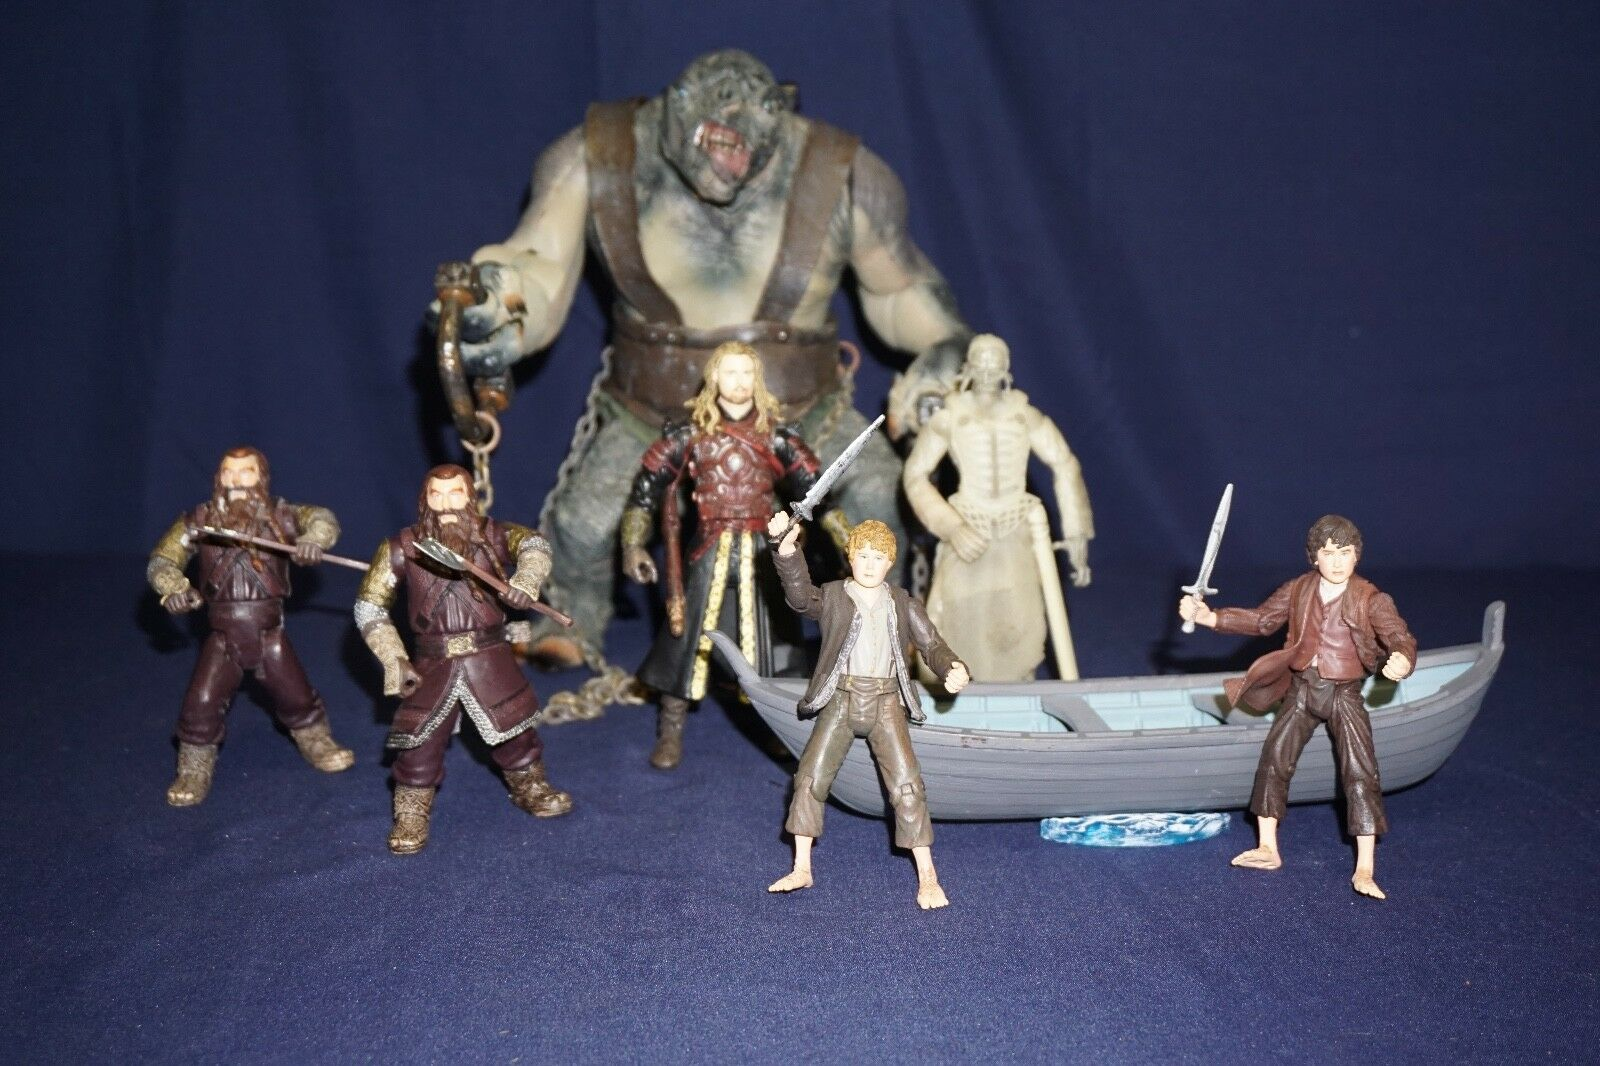 LORD OF THE RINGS ARMOROT TROLL EOMER FRODO SAM WISE KING OF DEAD BOAT STING